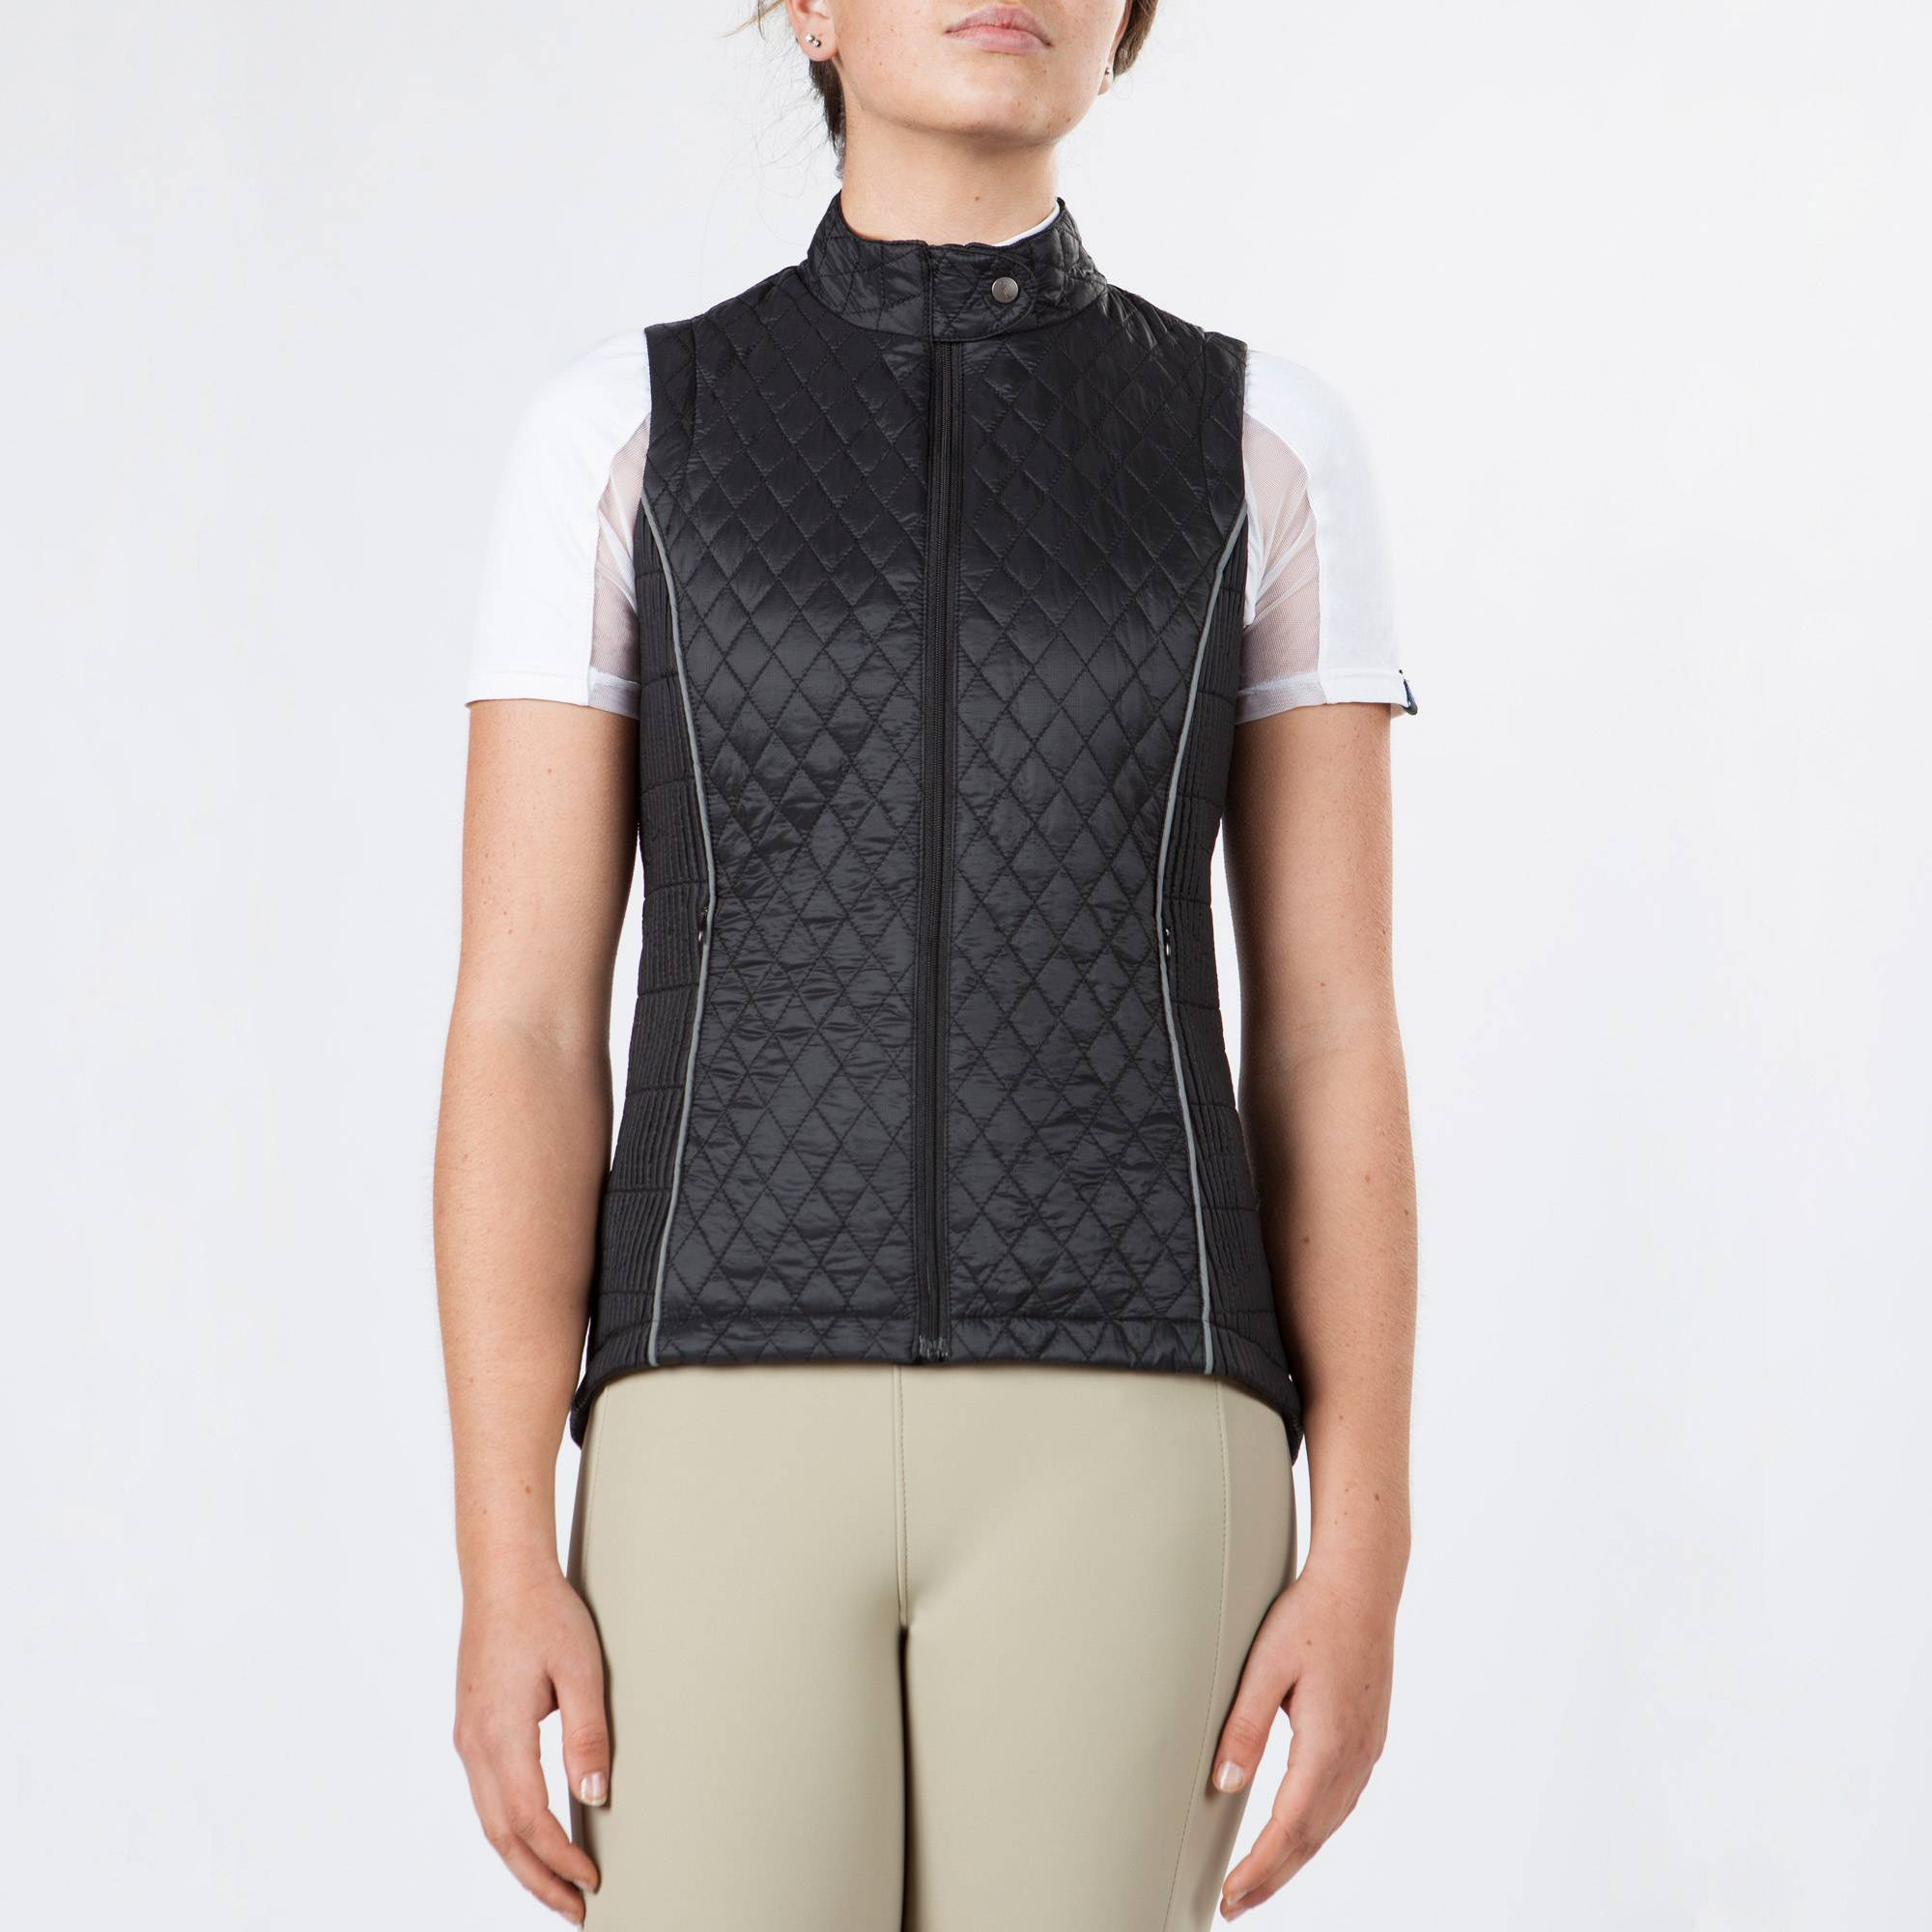 Irideon Richella Vest - Ladies